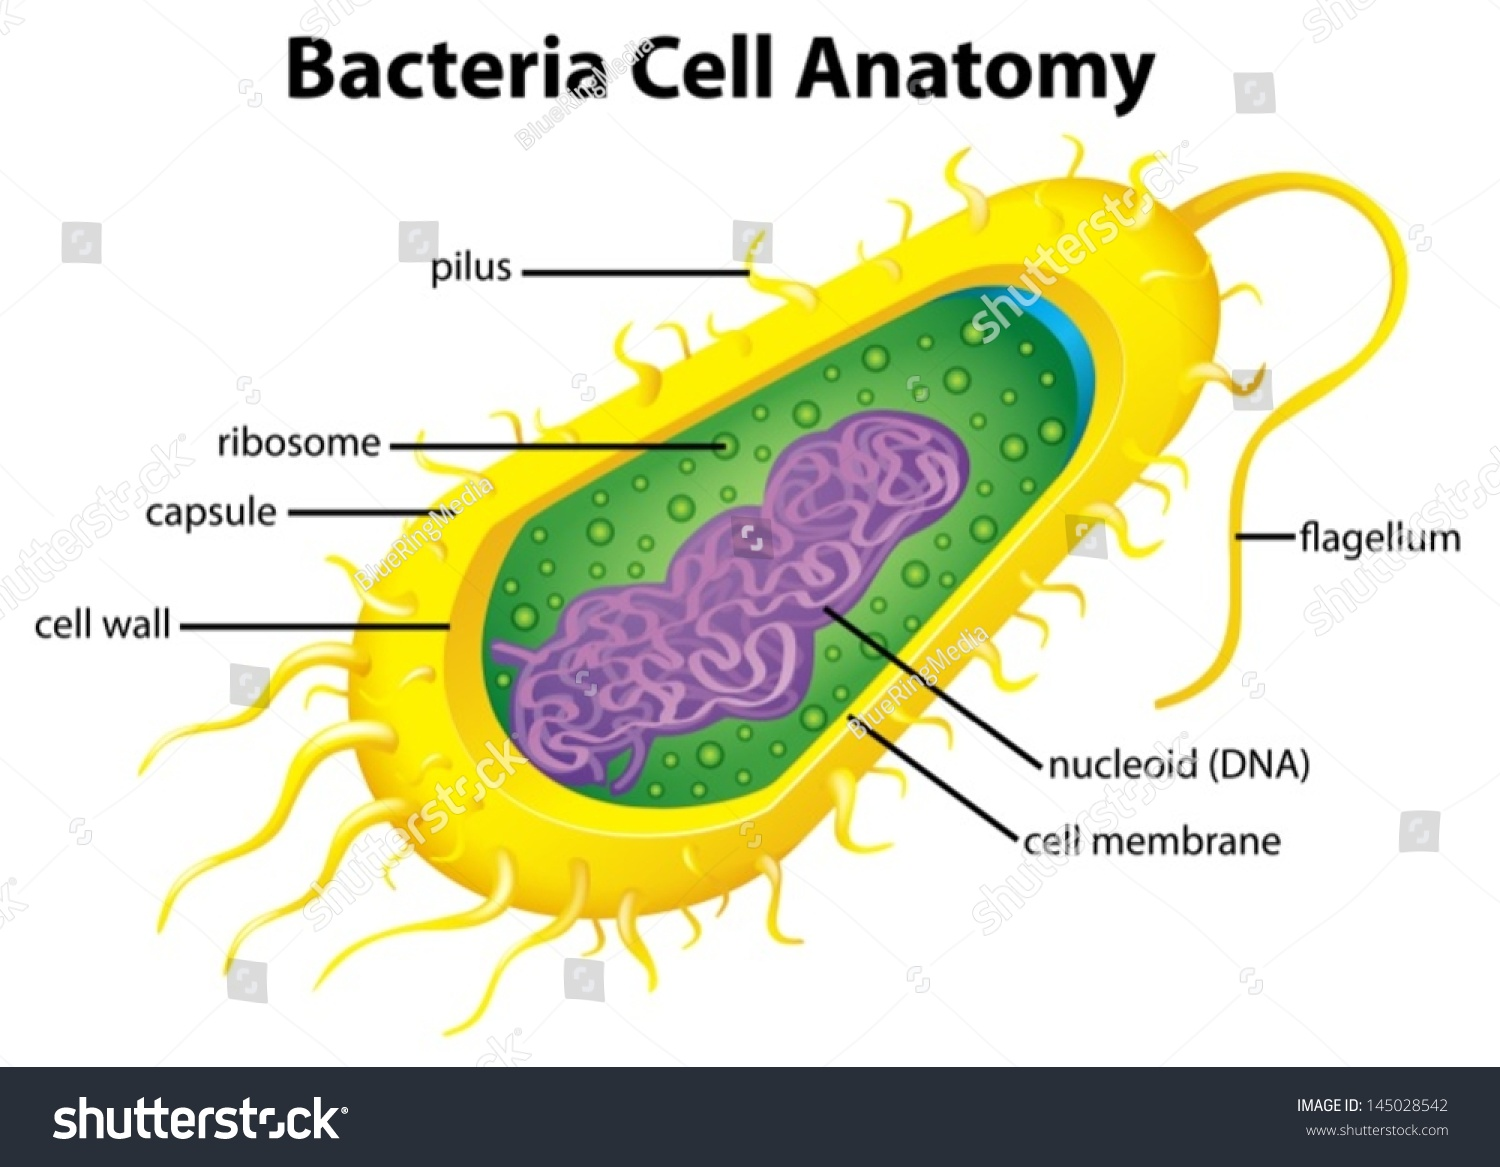 bacteria structure diagram au falcon wiring illustration cell stock vector royalty free of the